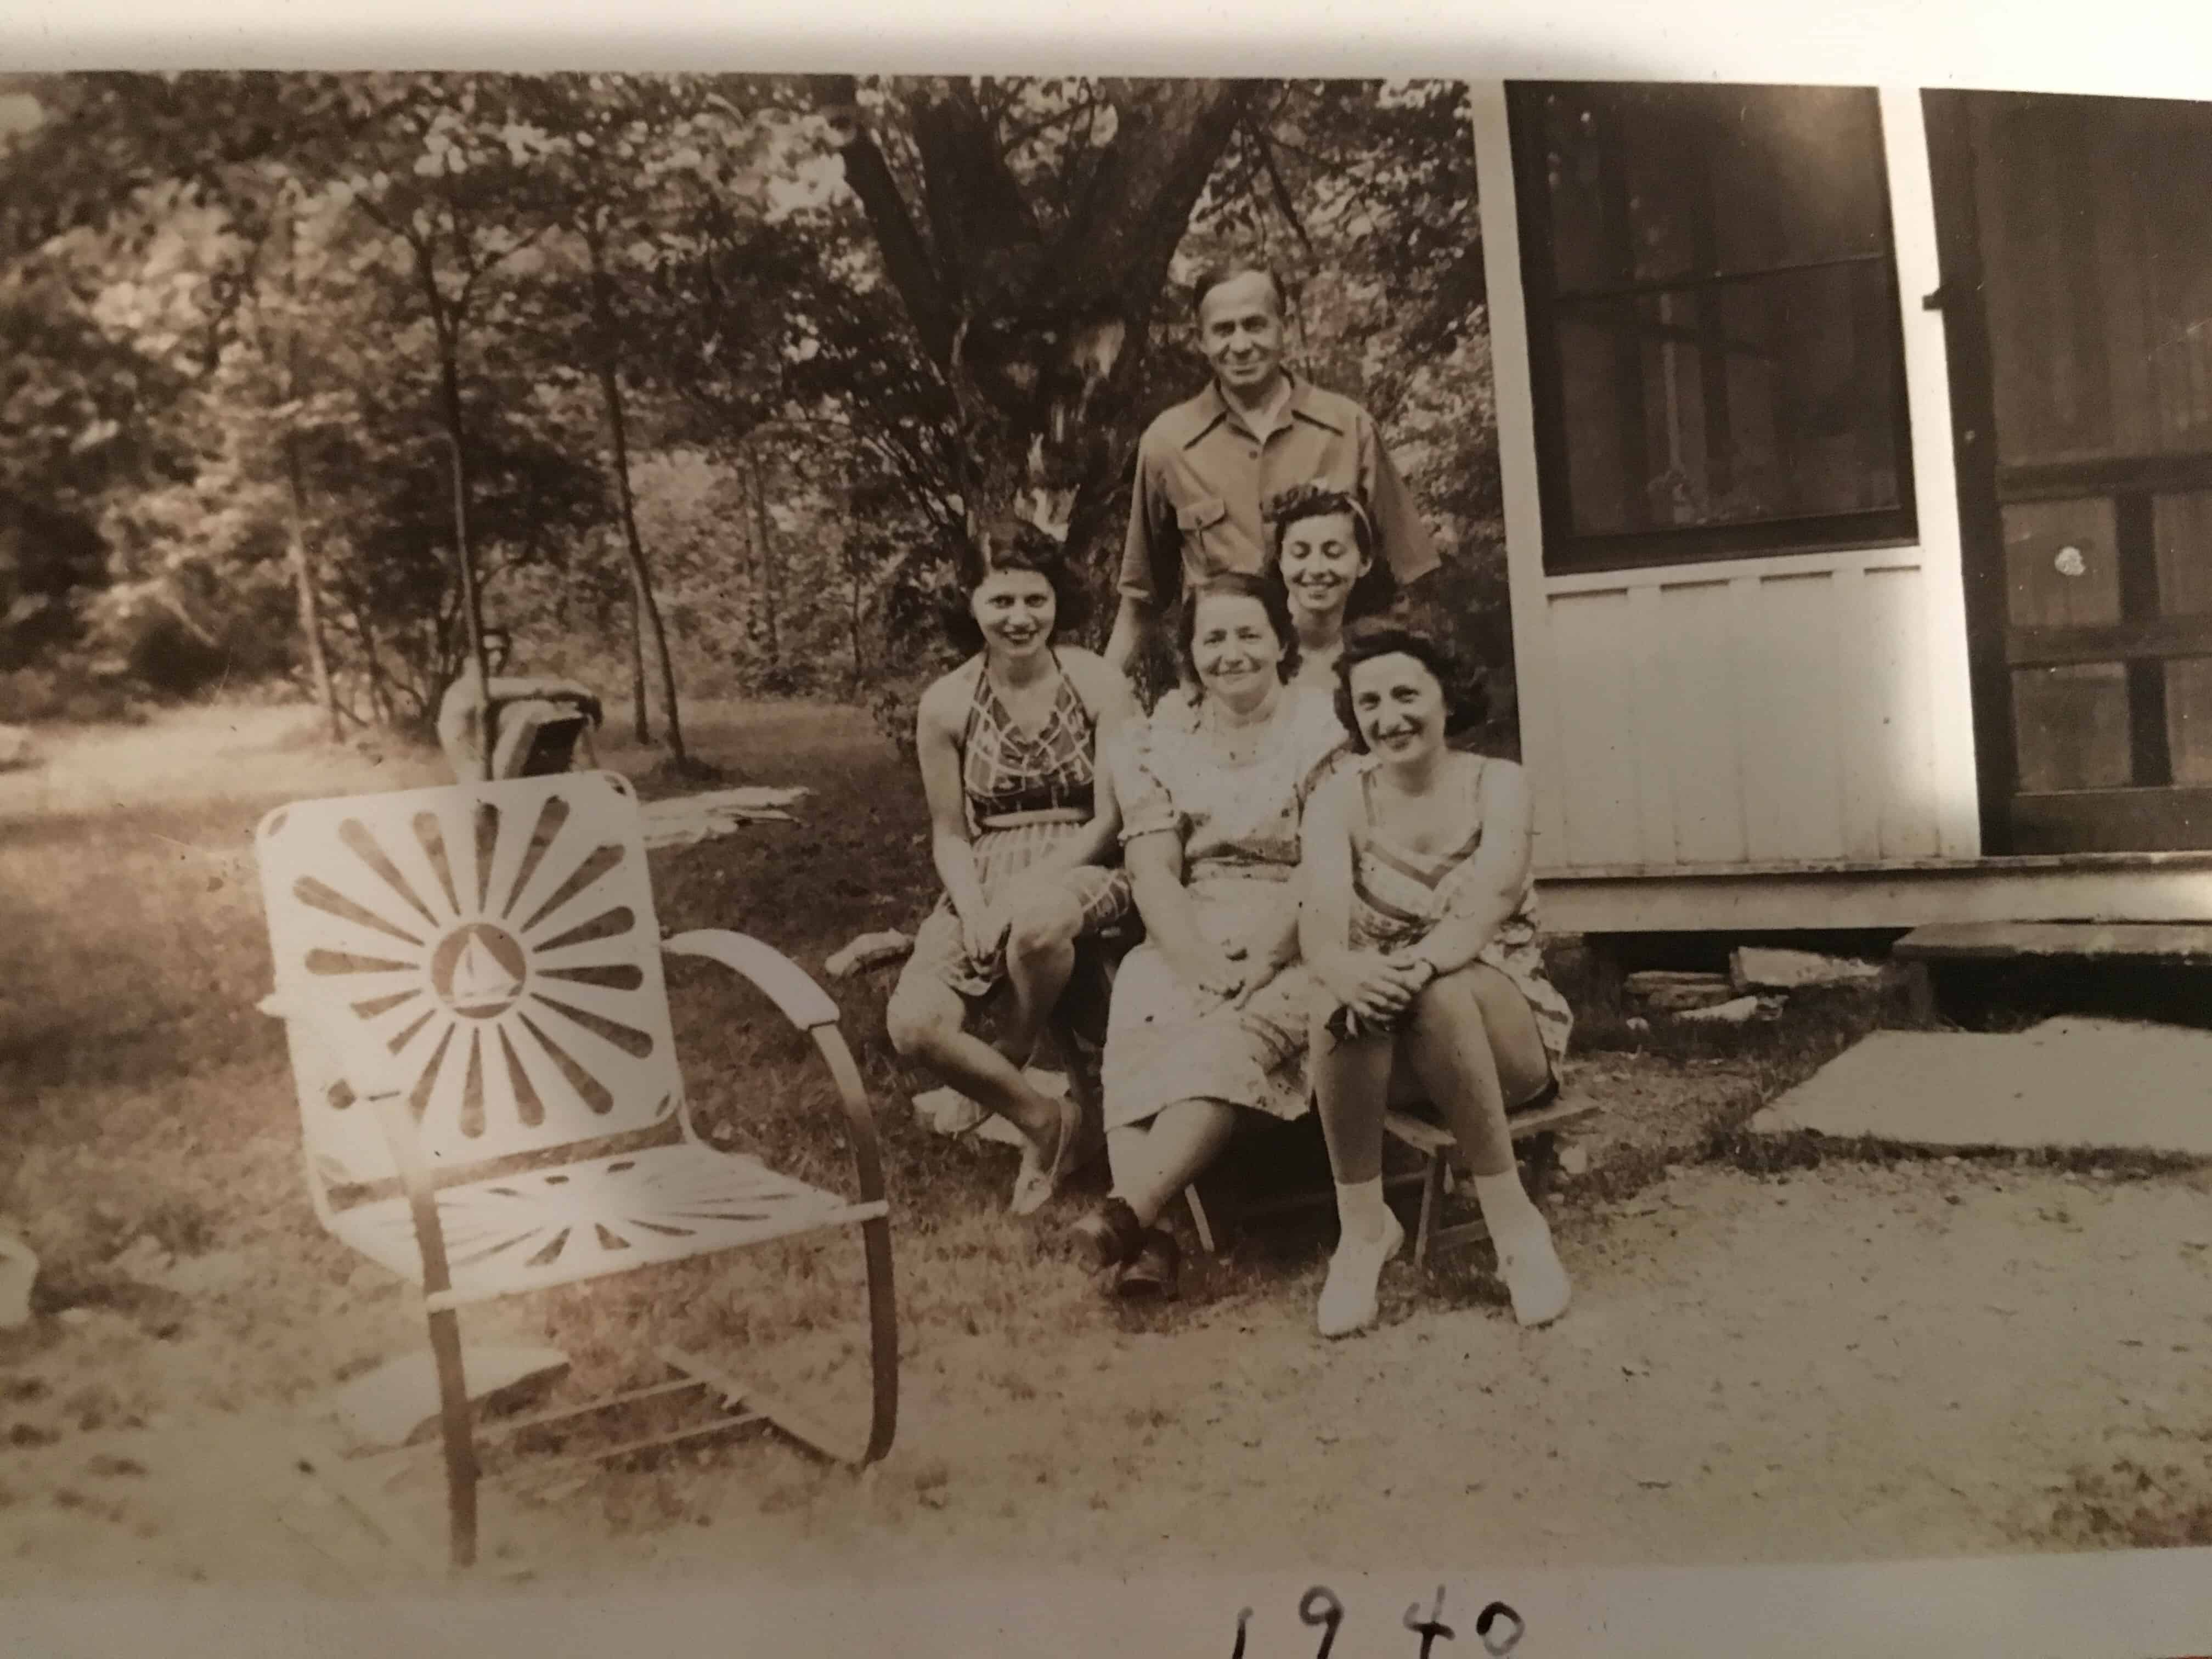 1940 at Sackett Lake, Grandma Clara in middle, Grandpa Izzy standing in back, Sisters, Ann and Gertie, right and left of Clara (mom and Aunt).